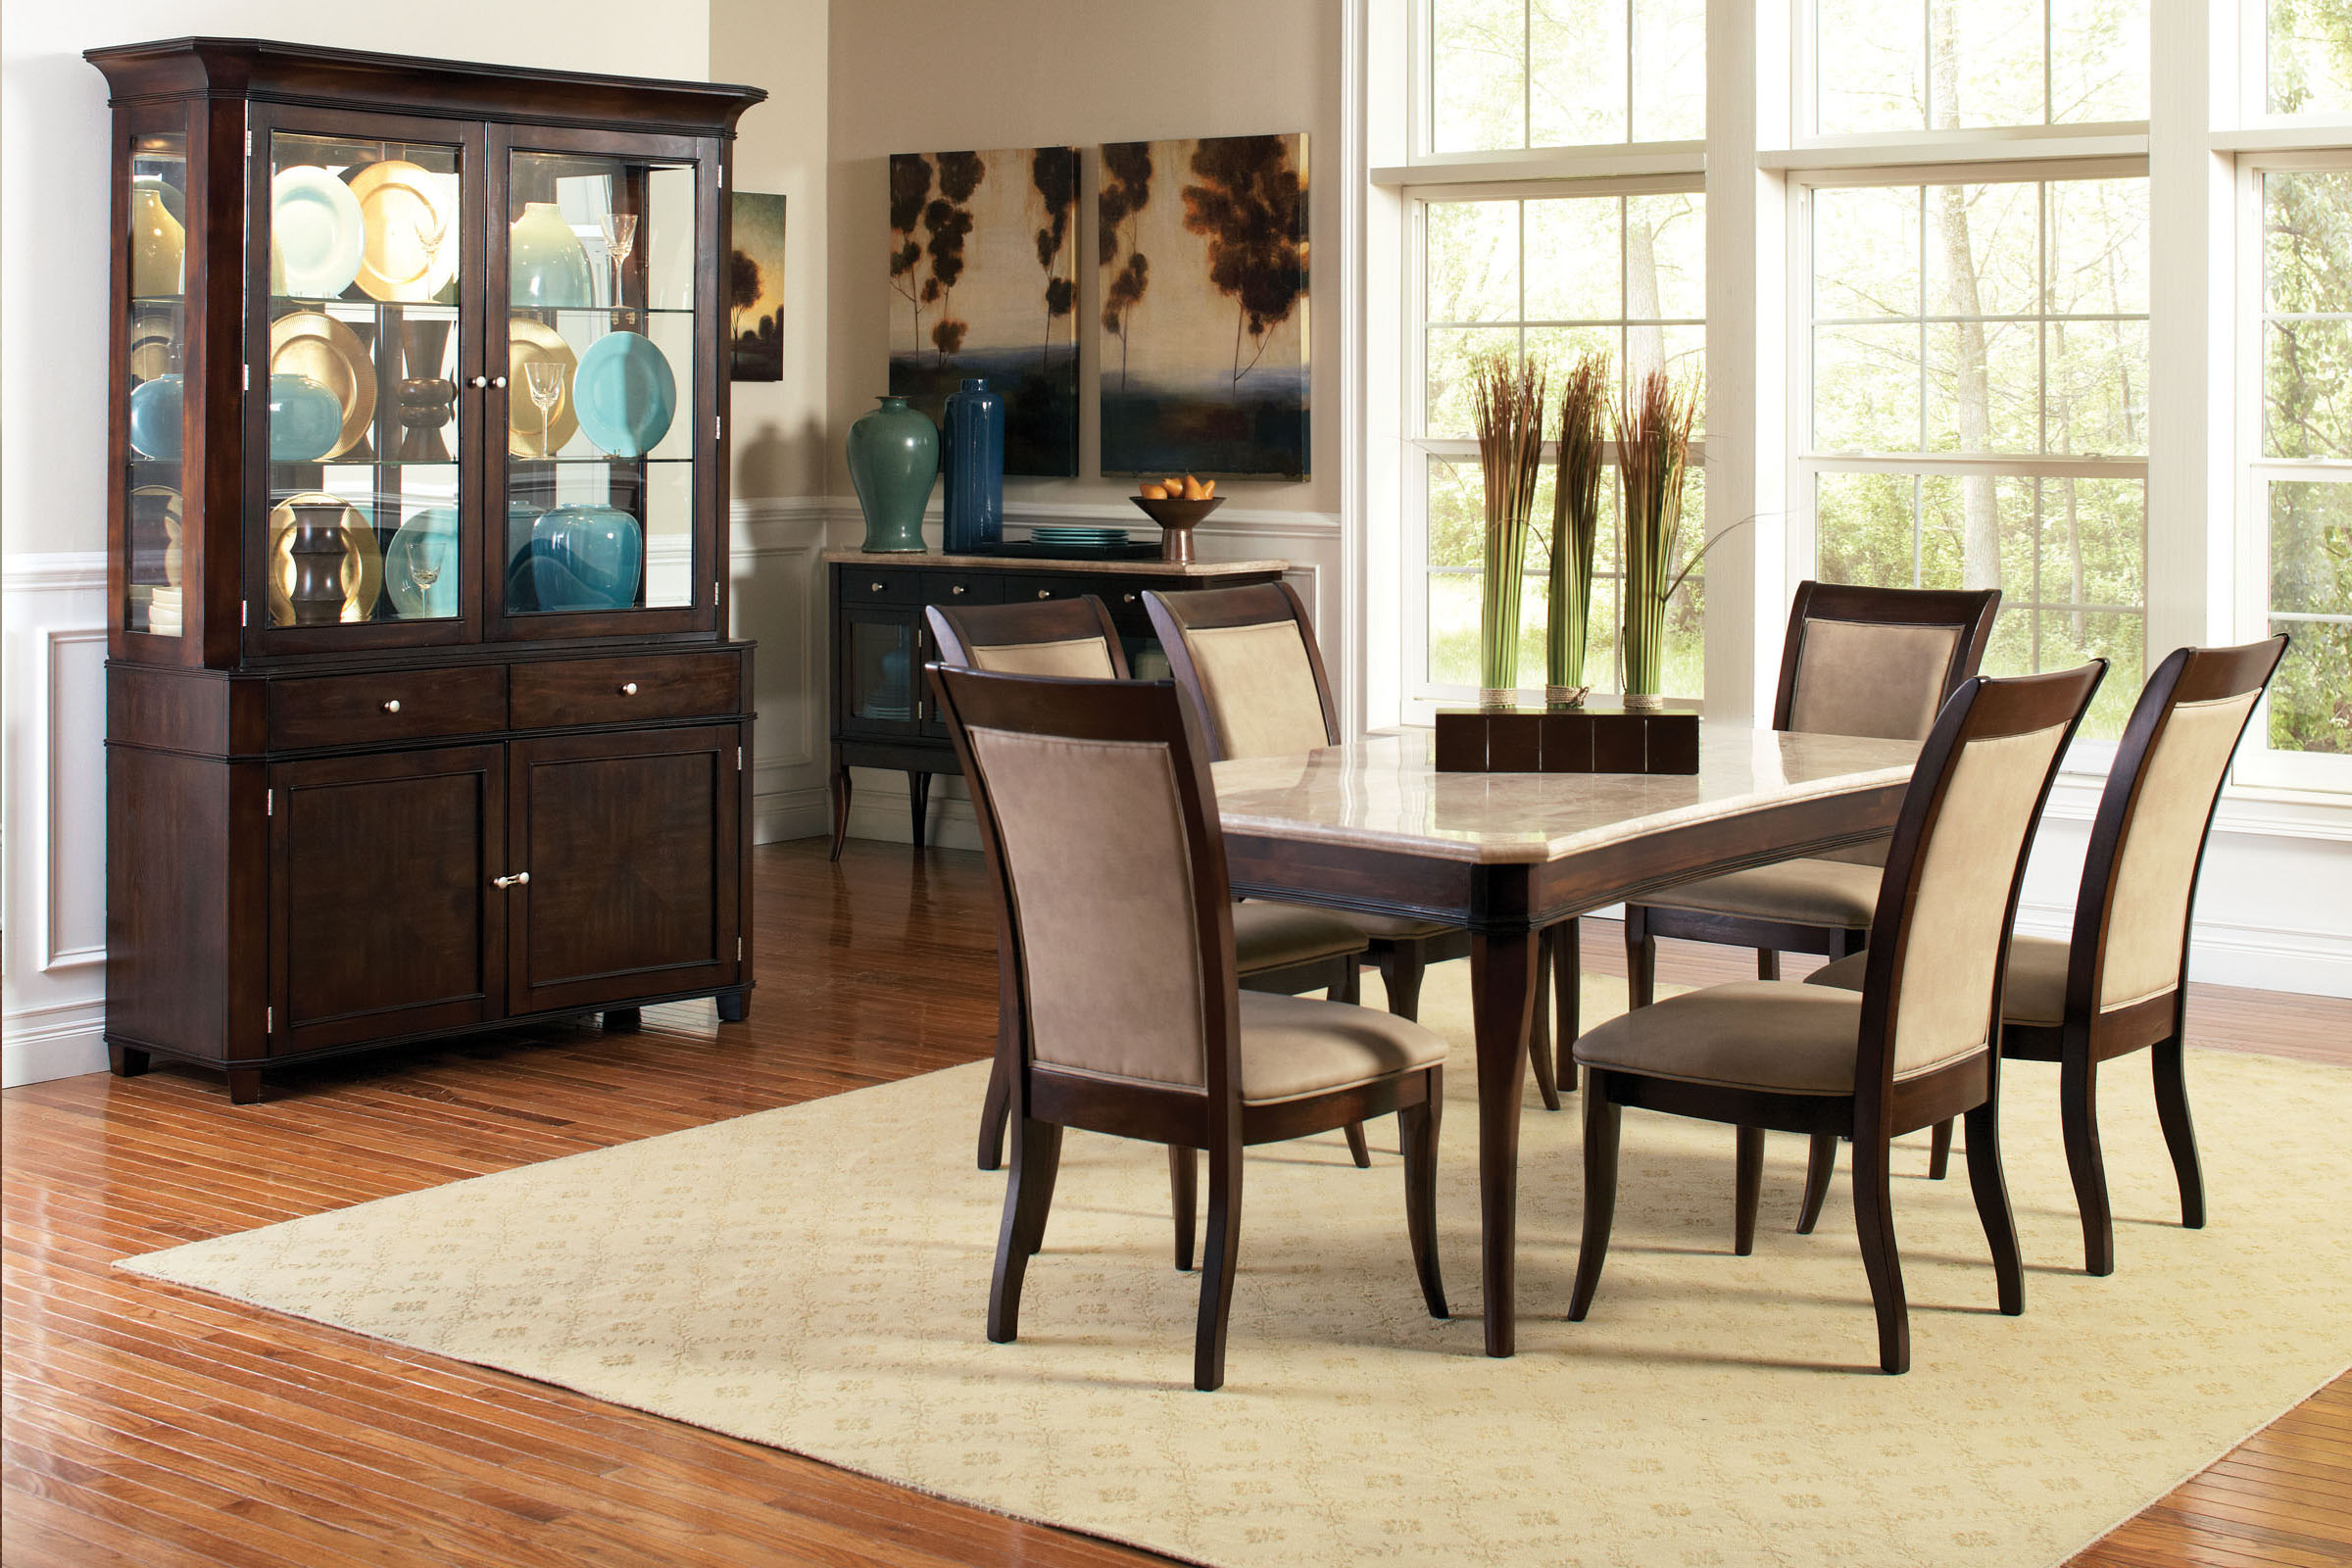 Marseille Bedroom Furniture Marseille Dining Room Collection